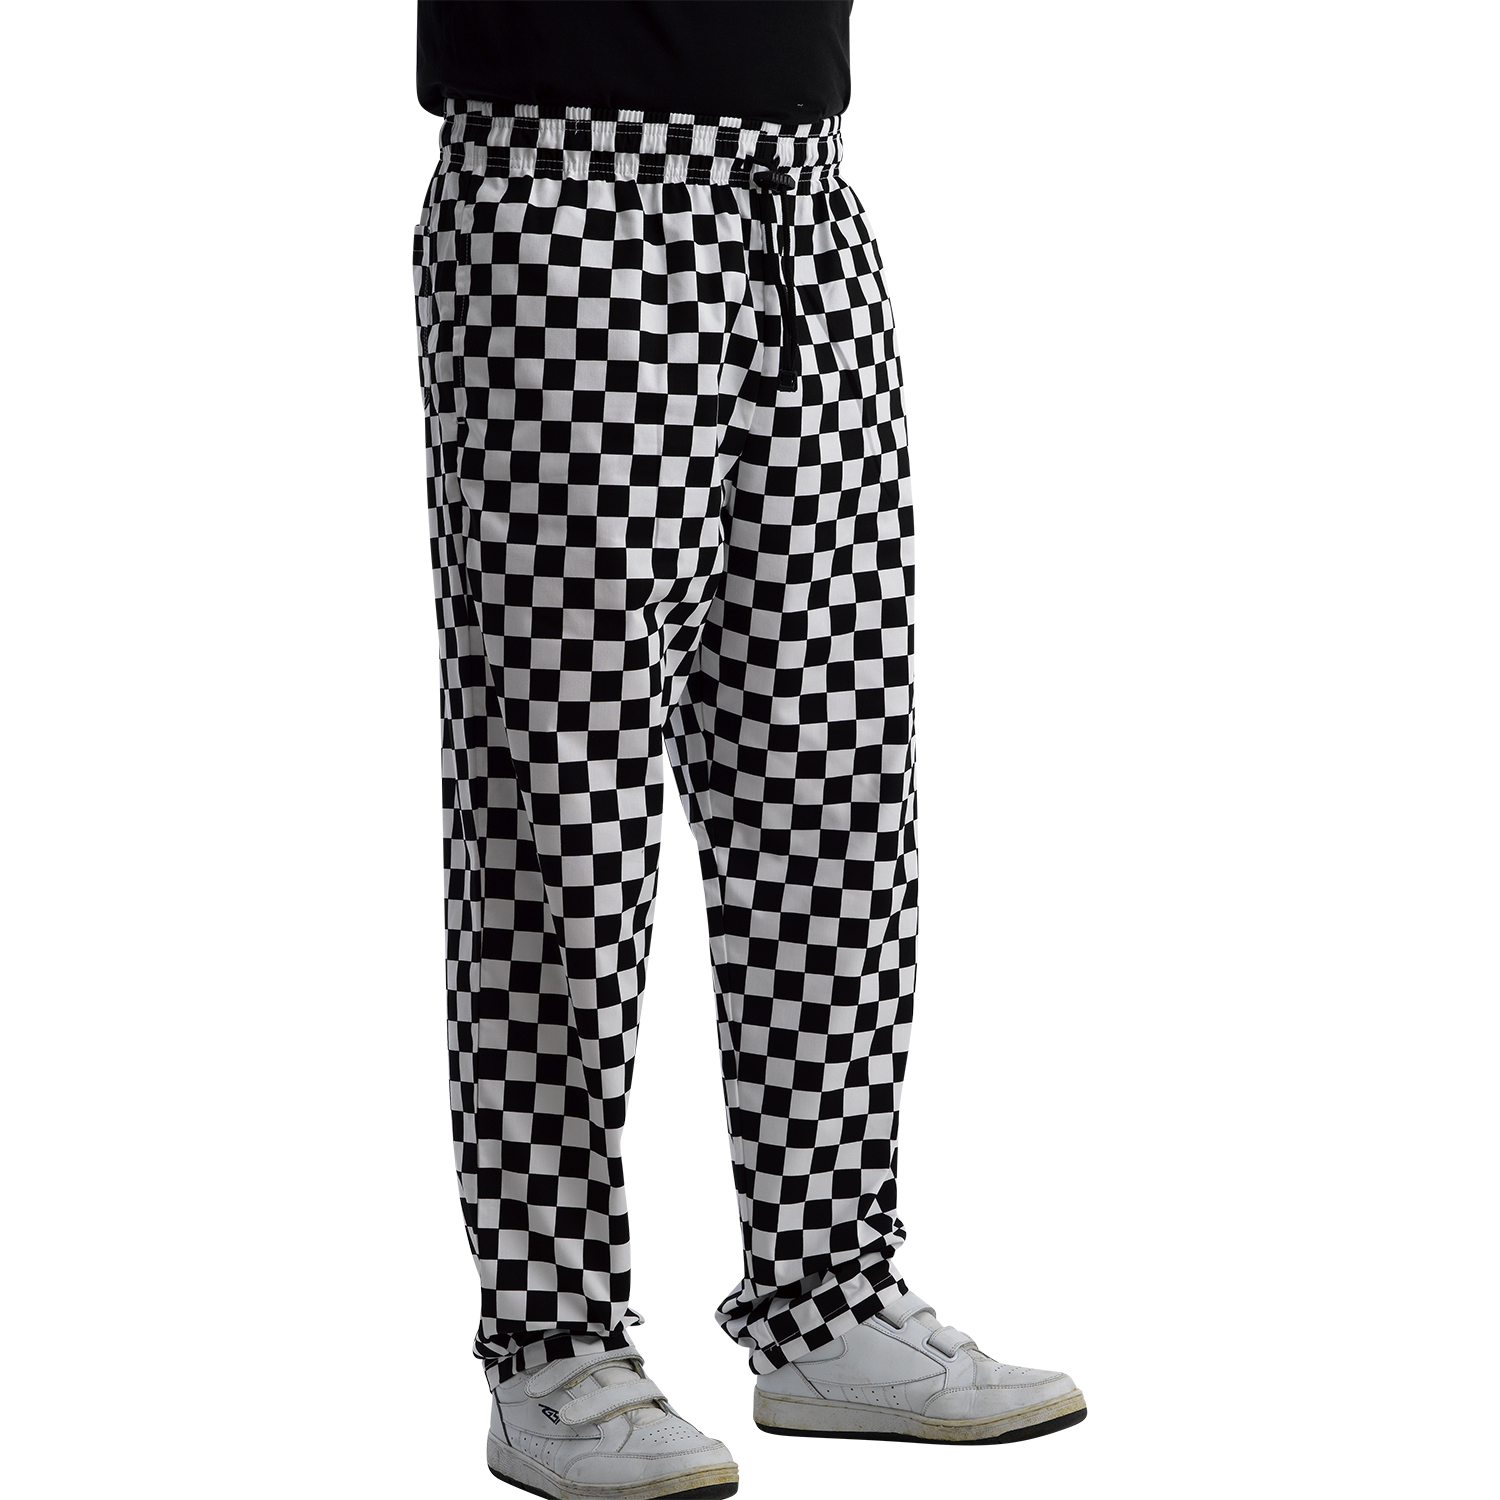 Plaid Pants. Add interest to any wardrobe with a pair of plaid pants. These pants can be found in bright plaids as well as subtle styles. Some plaid patterns are even subtle enough to wear to work, and many feature neutral tones that pair well with solids in any color.